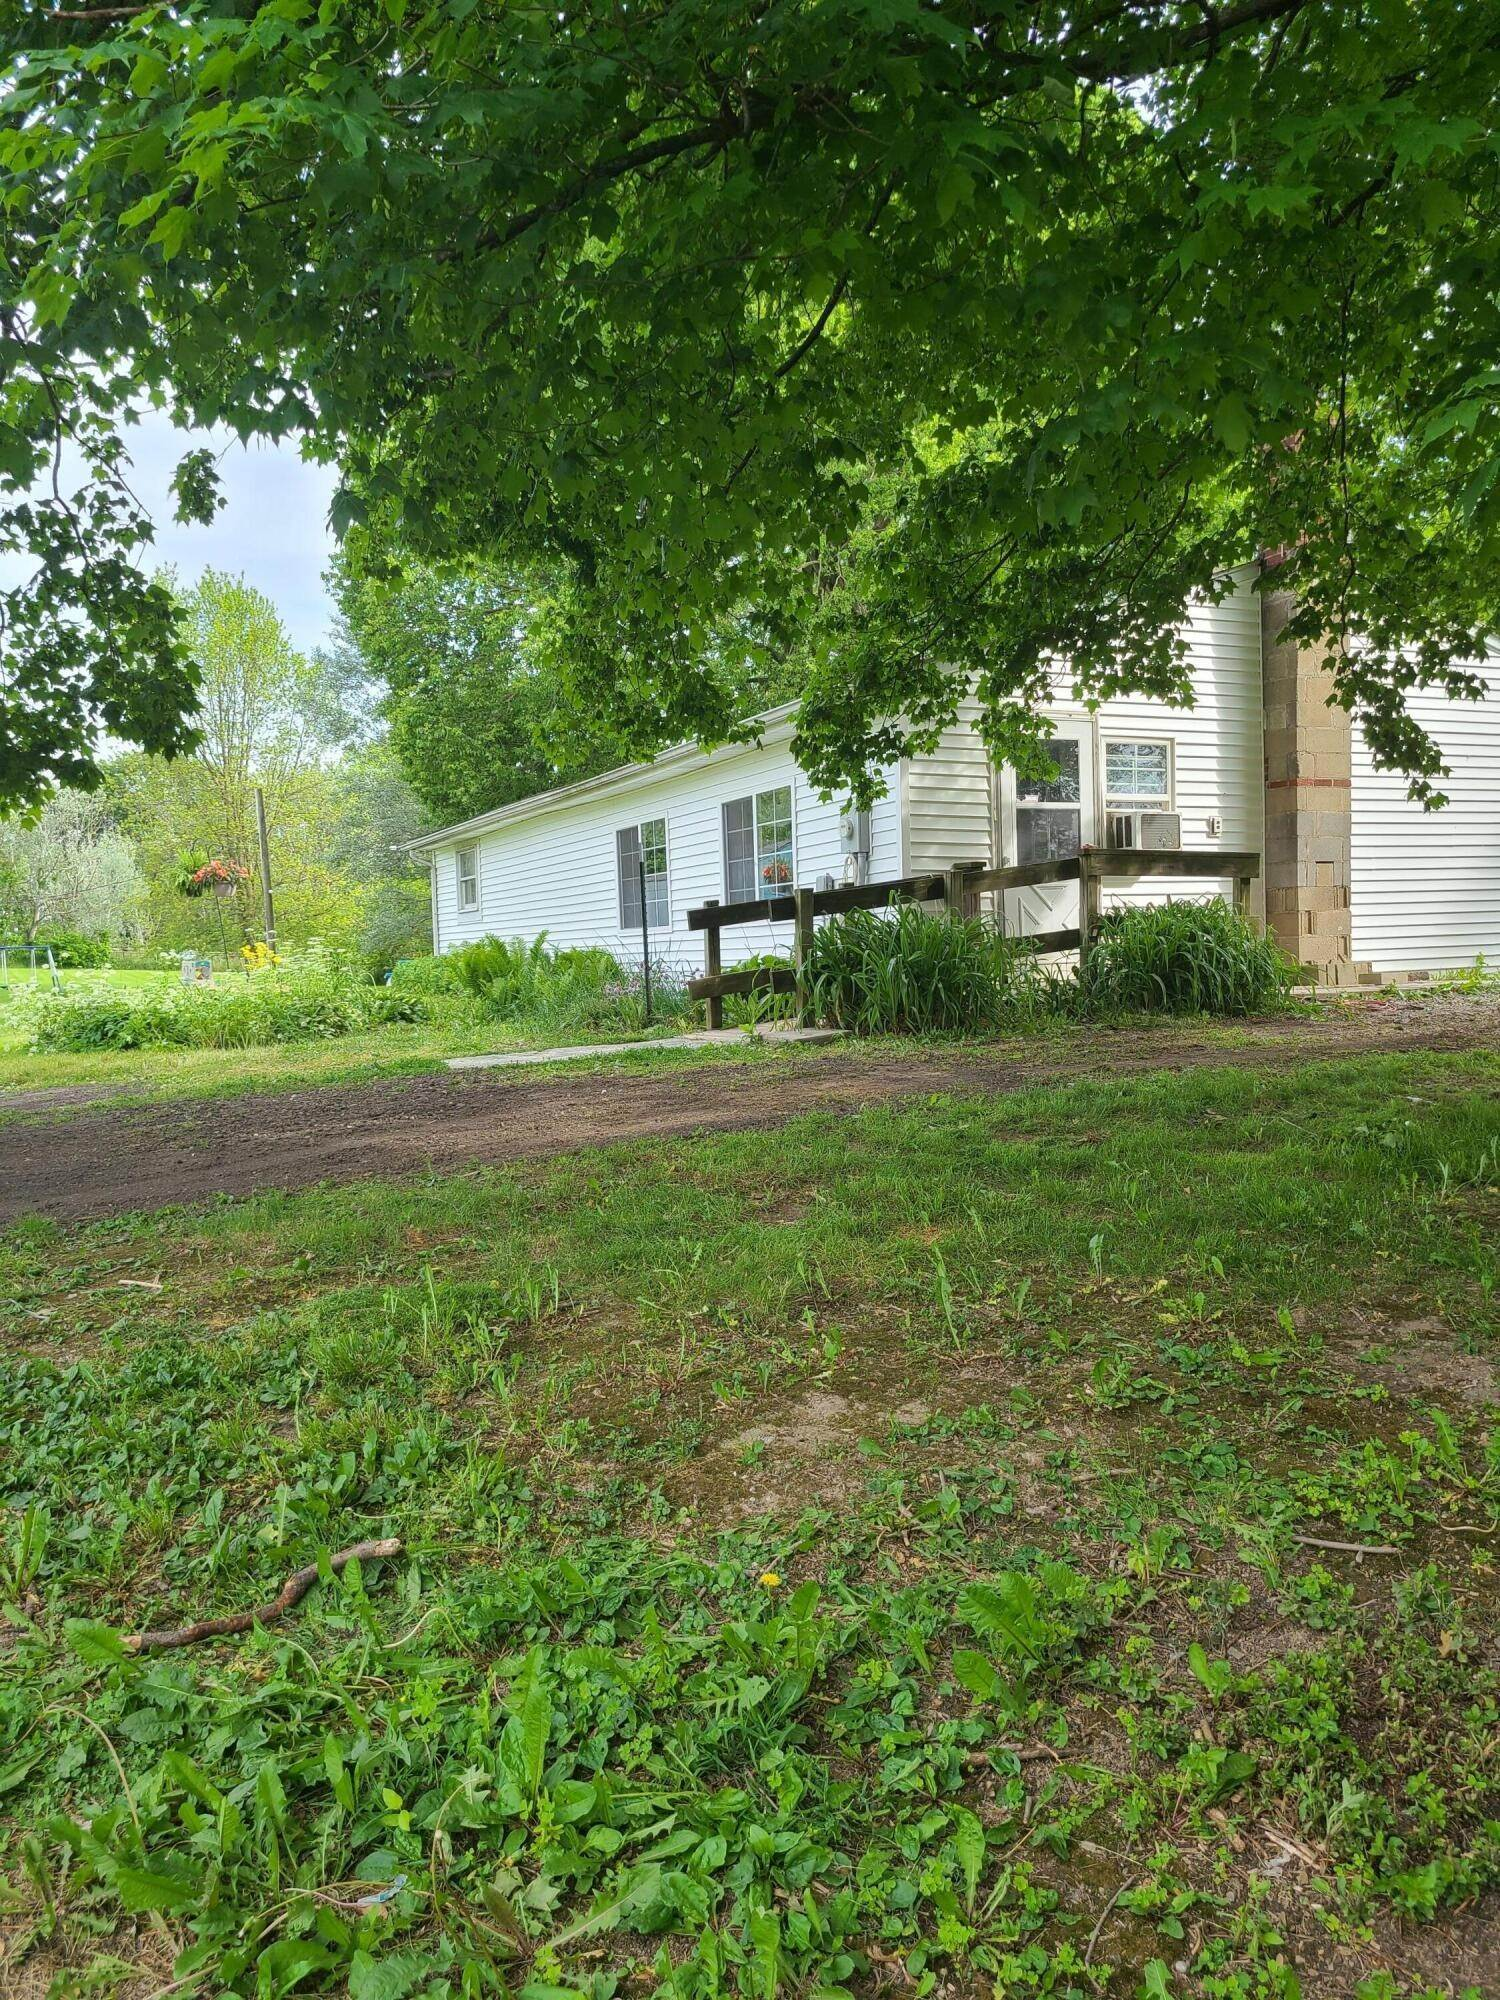 Single Family Homes for Sale at 2149 Co Rd 156 Ashley, Ohio 43003 United States